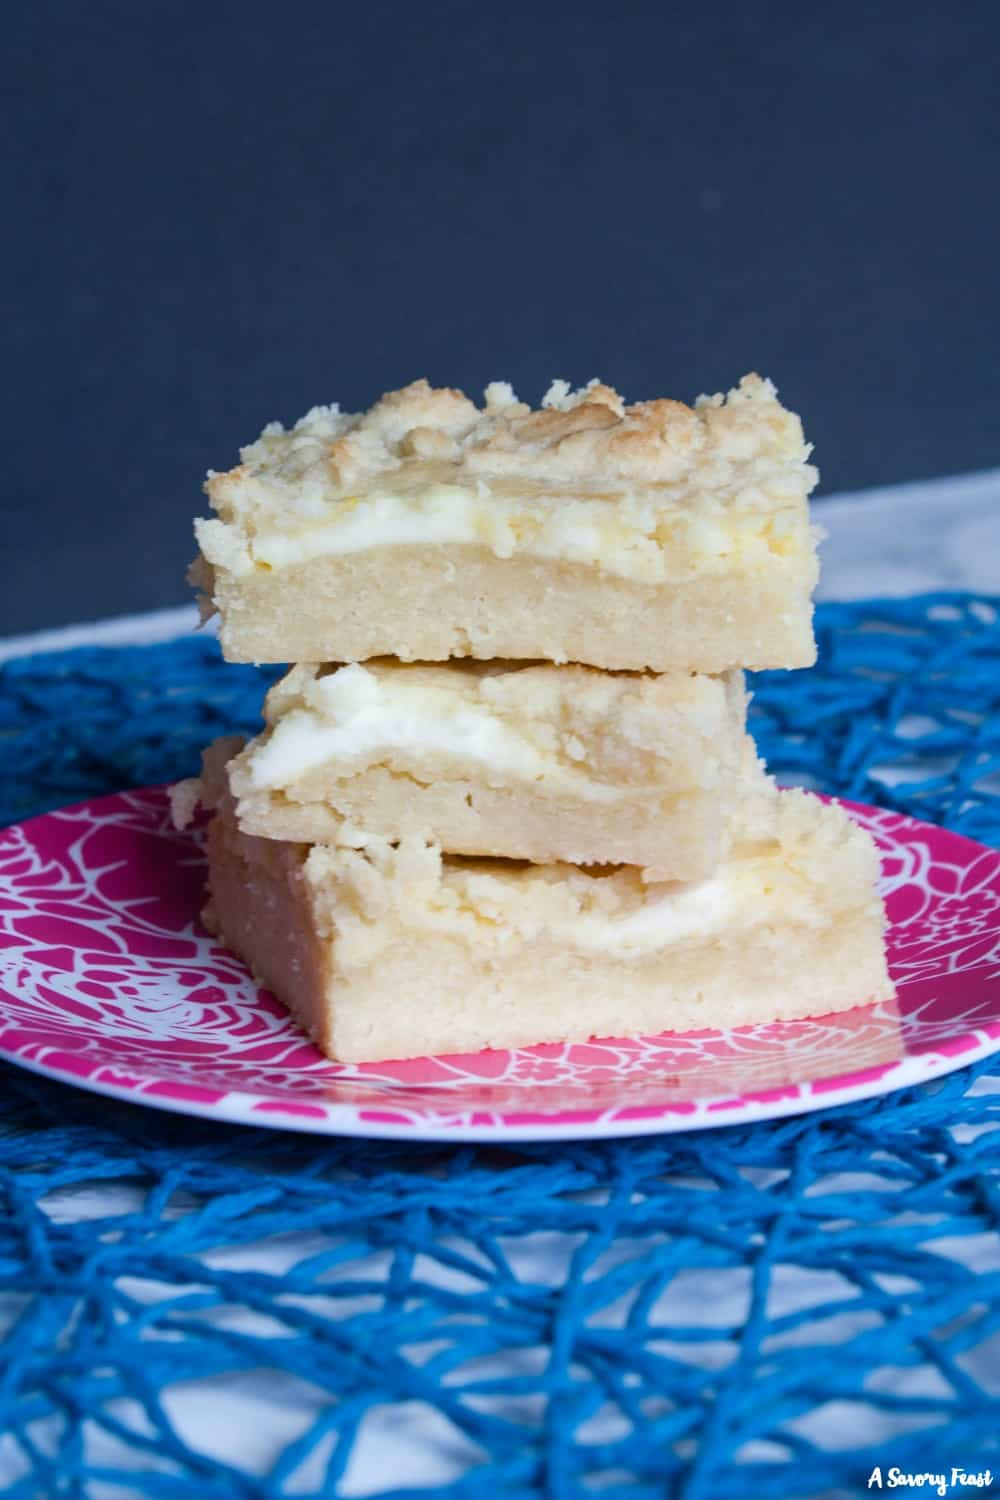 Three layers make up these delicious Lemon Cheesecake Crumble Bars. First comes a shortbread base, then a lemon cheesecake layer. It's all topped with a buttery crumble that brings the whole dessert together. This treat is a must this summer!